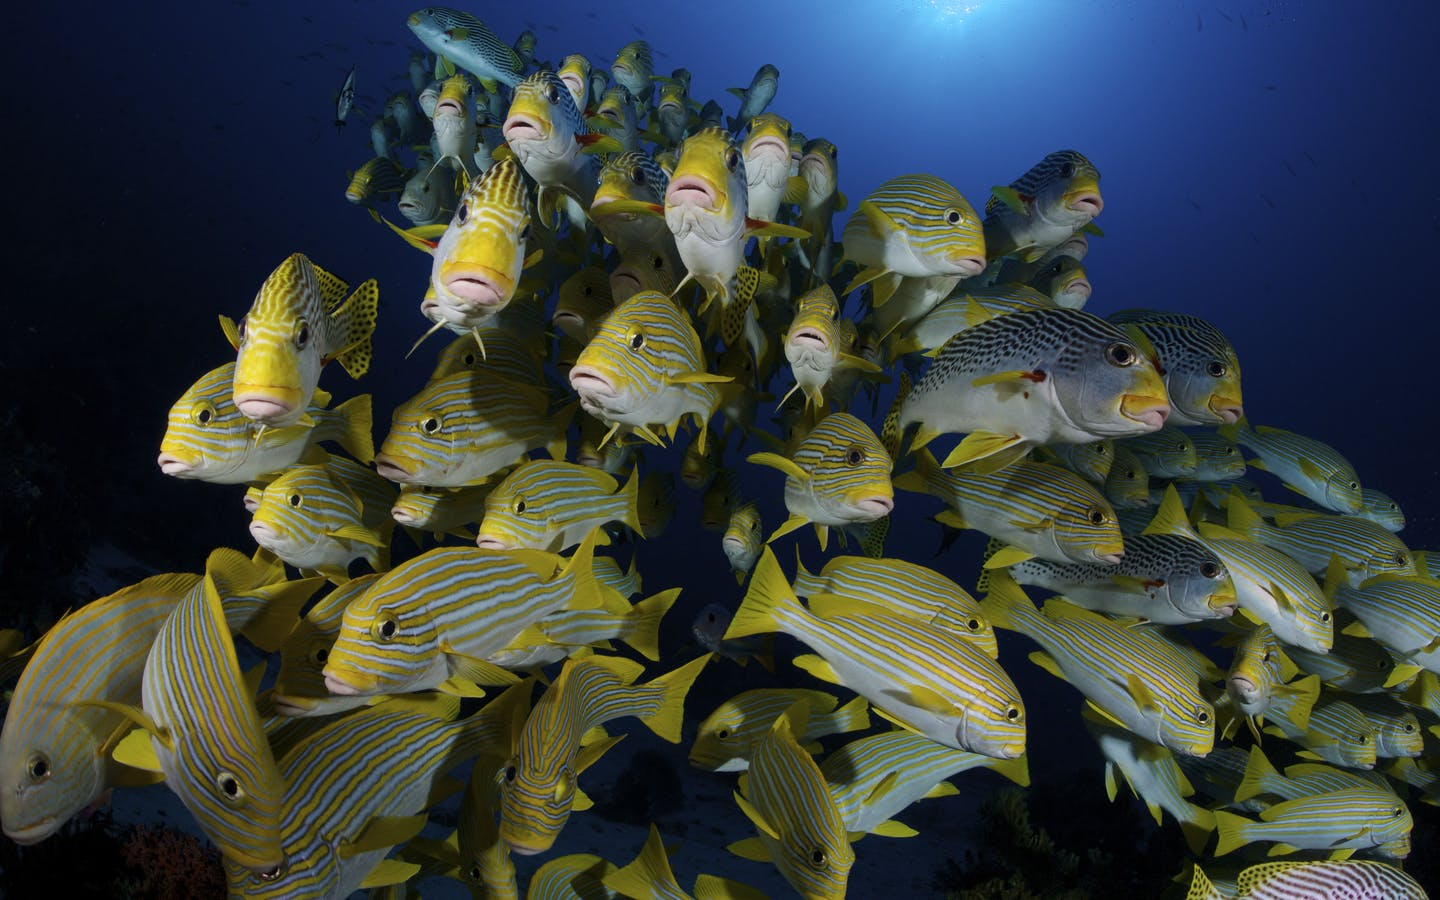 A school of diagonal banded and yellow ribbon sweetlips. Populations of commercially important fish species like these have been increasing in Bird's Head.